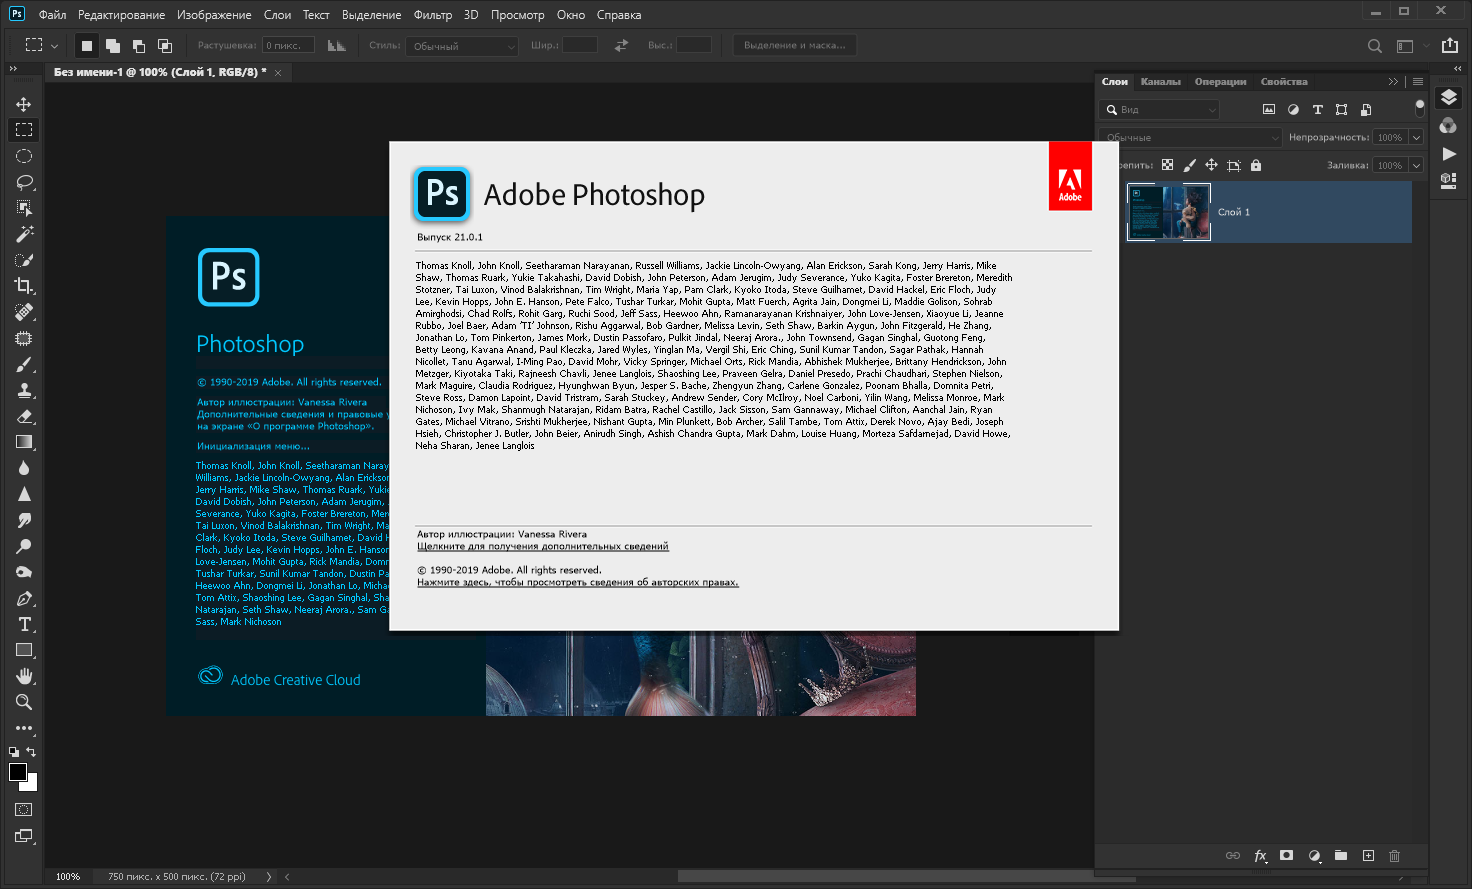 Adobe Photoshop 2020 v21.0.1.47 [x64] [with Plugins] (2019) PC | Portable by XpucT